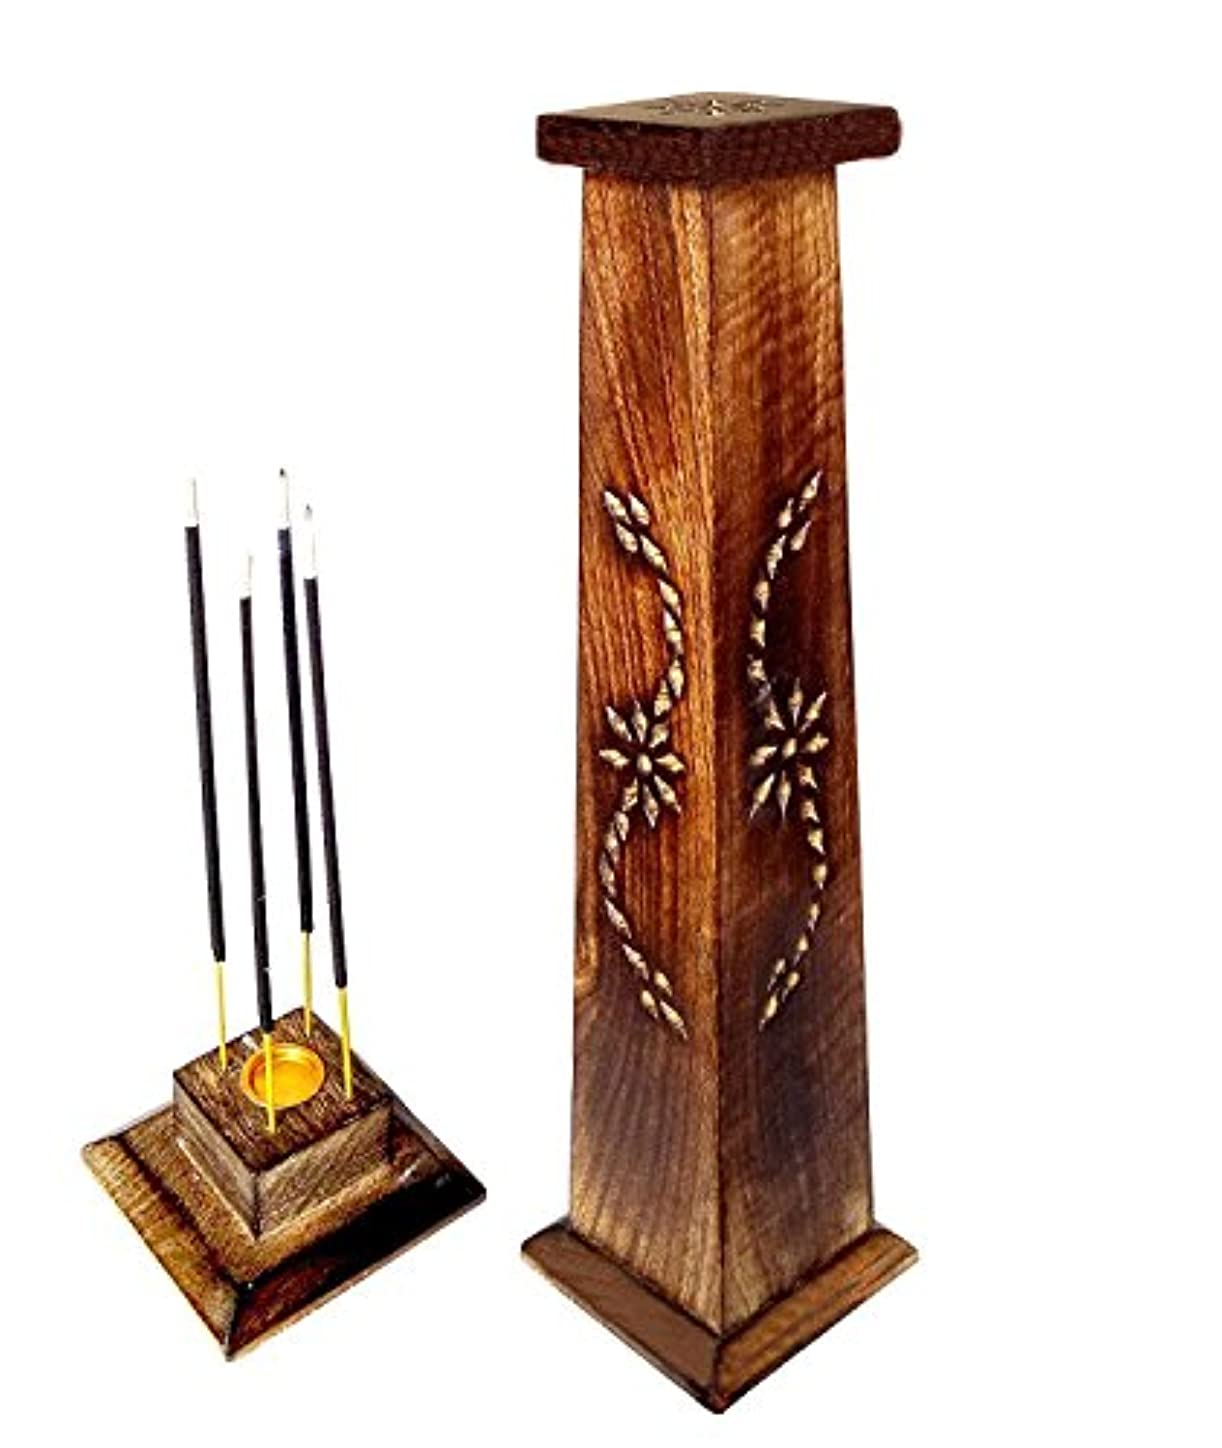 休日にエーカー中木製香炉Ideal for Aromatherapy、禅、Spa、Vastu、レイキChakra Votive Candle Garden Incense Tower 12